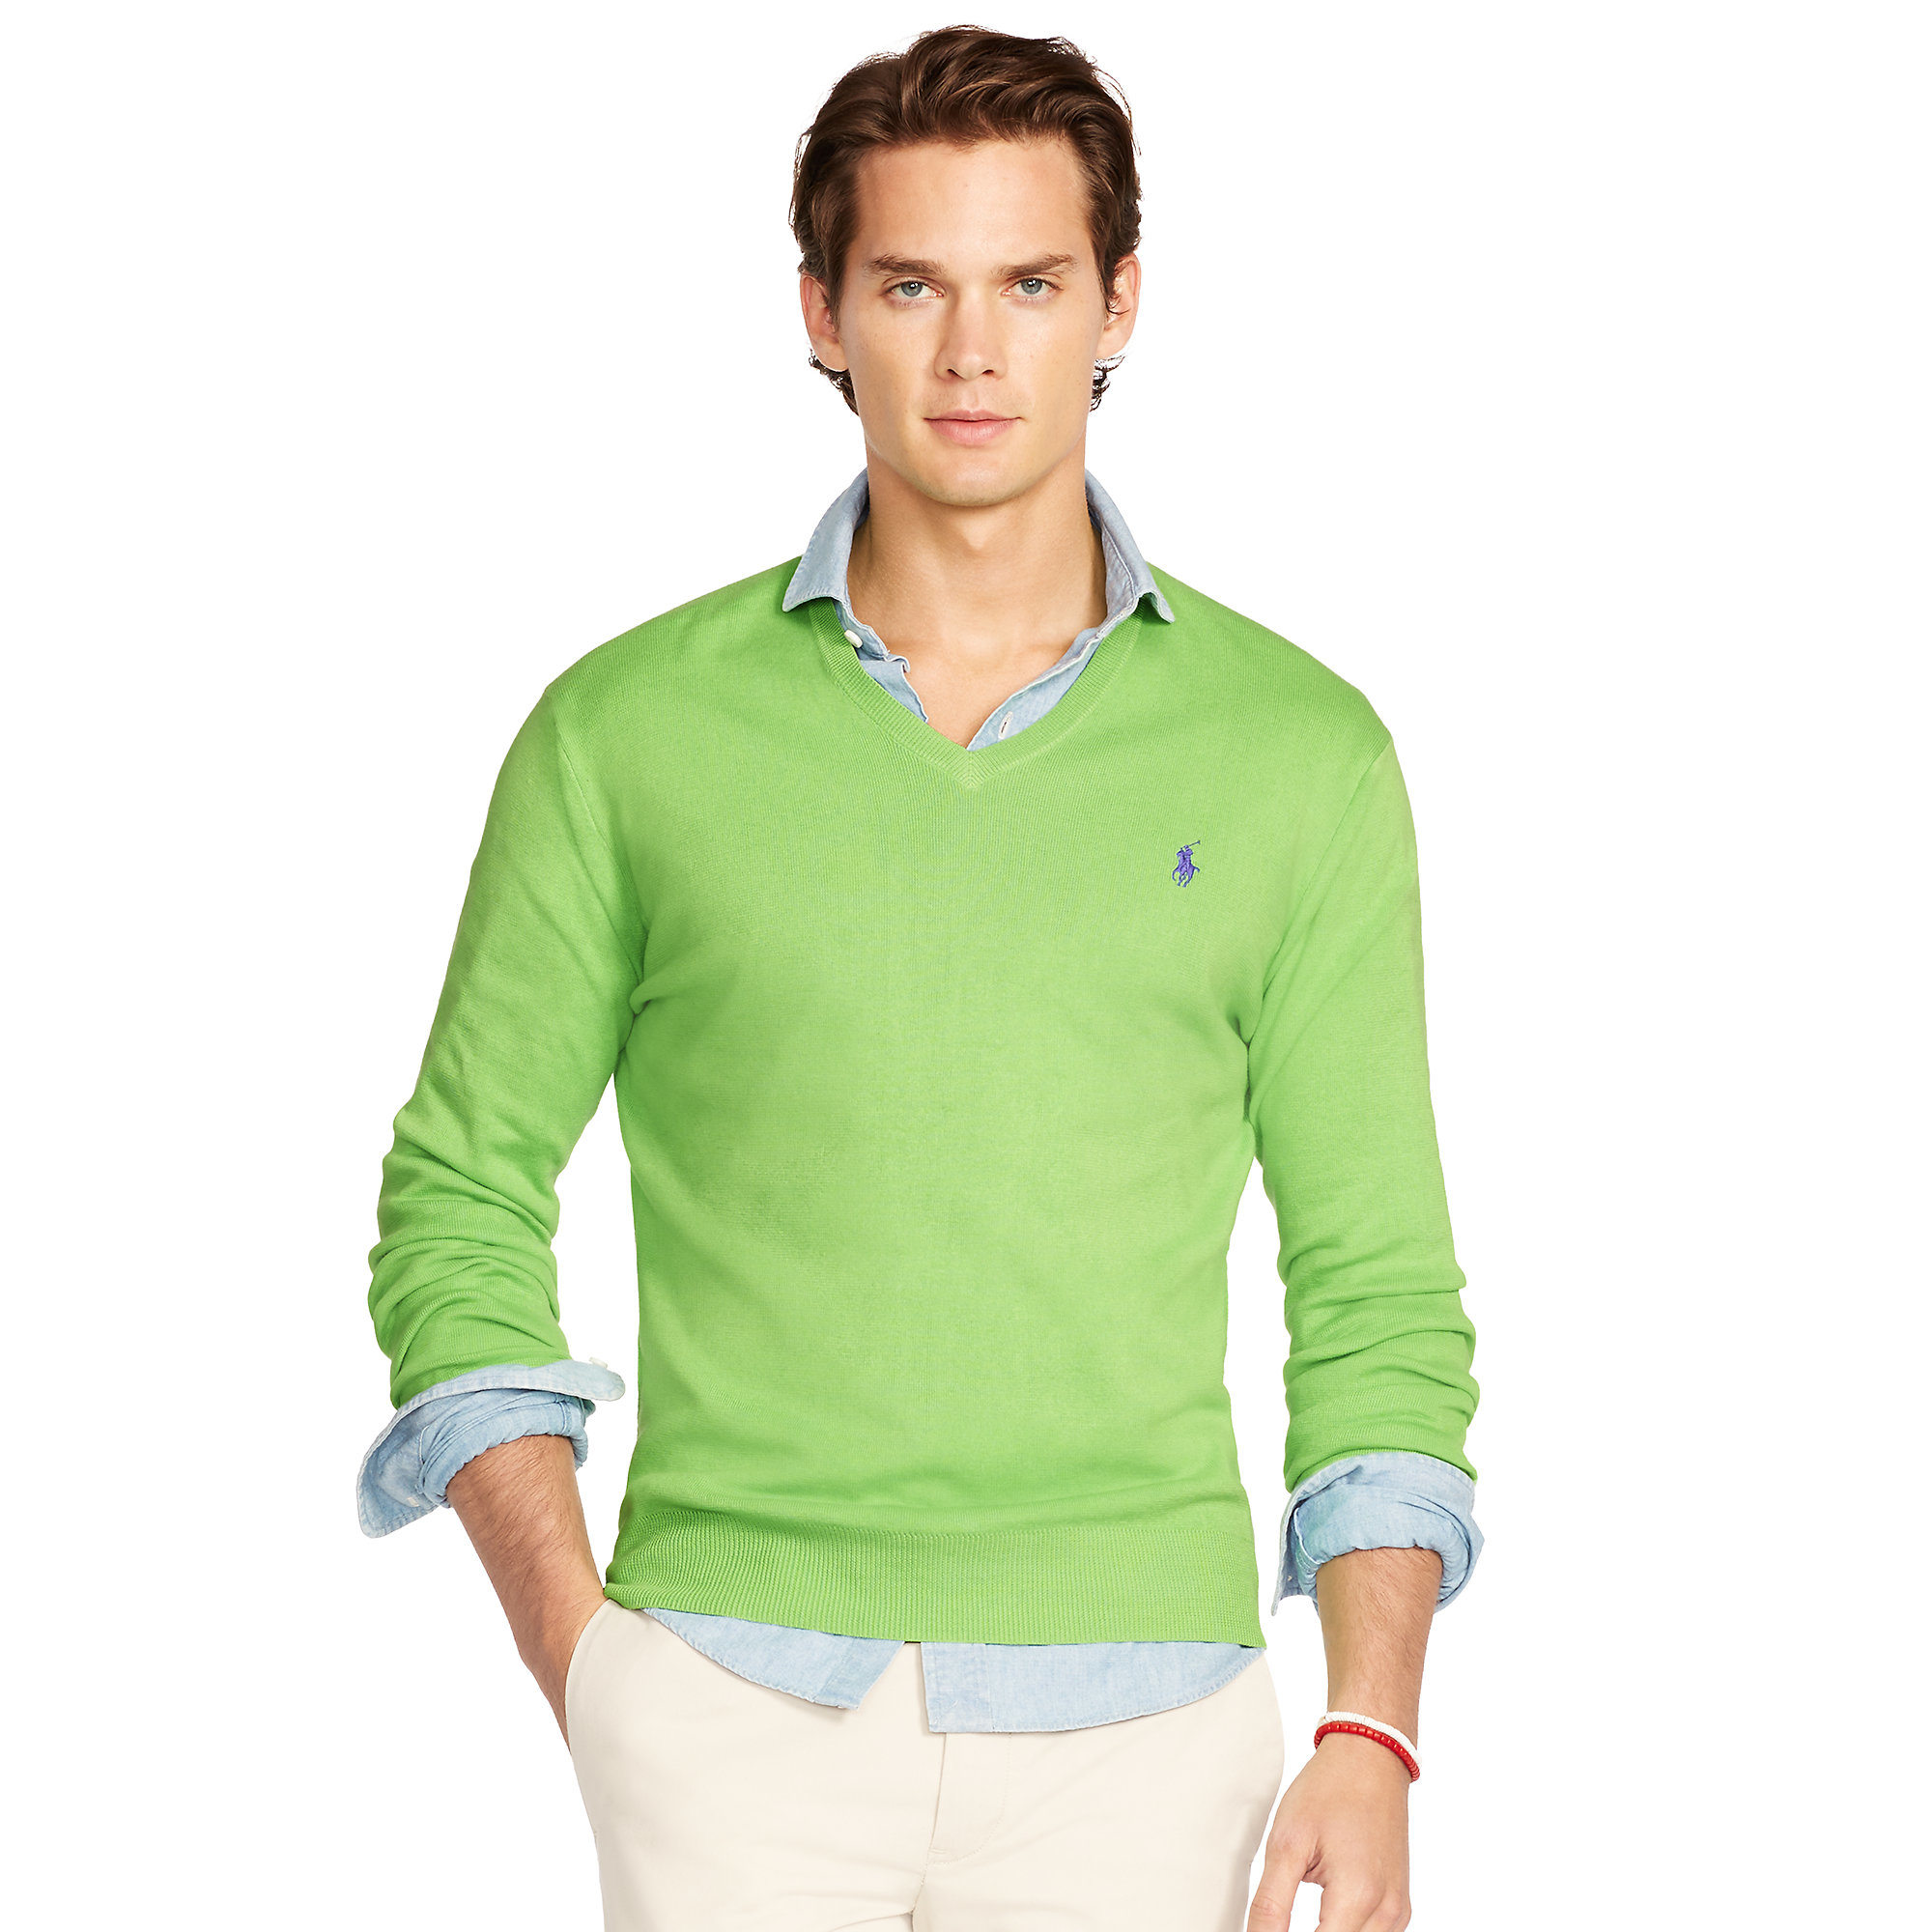 70a69193713b Lyst - Polo Ralph Lauren Pima Cotton V-neck Sweater in Green for Men